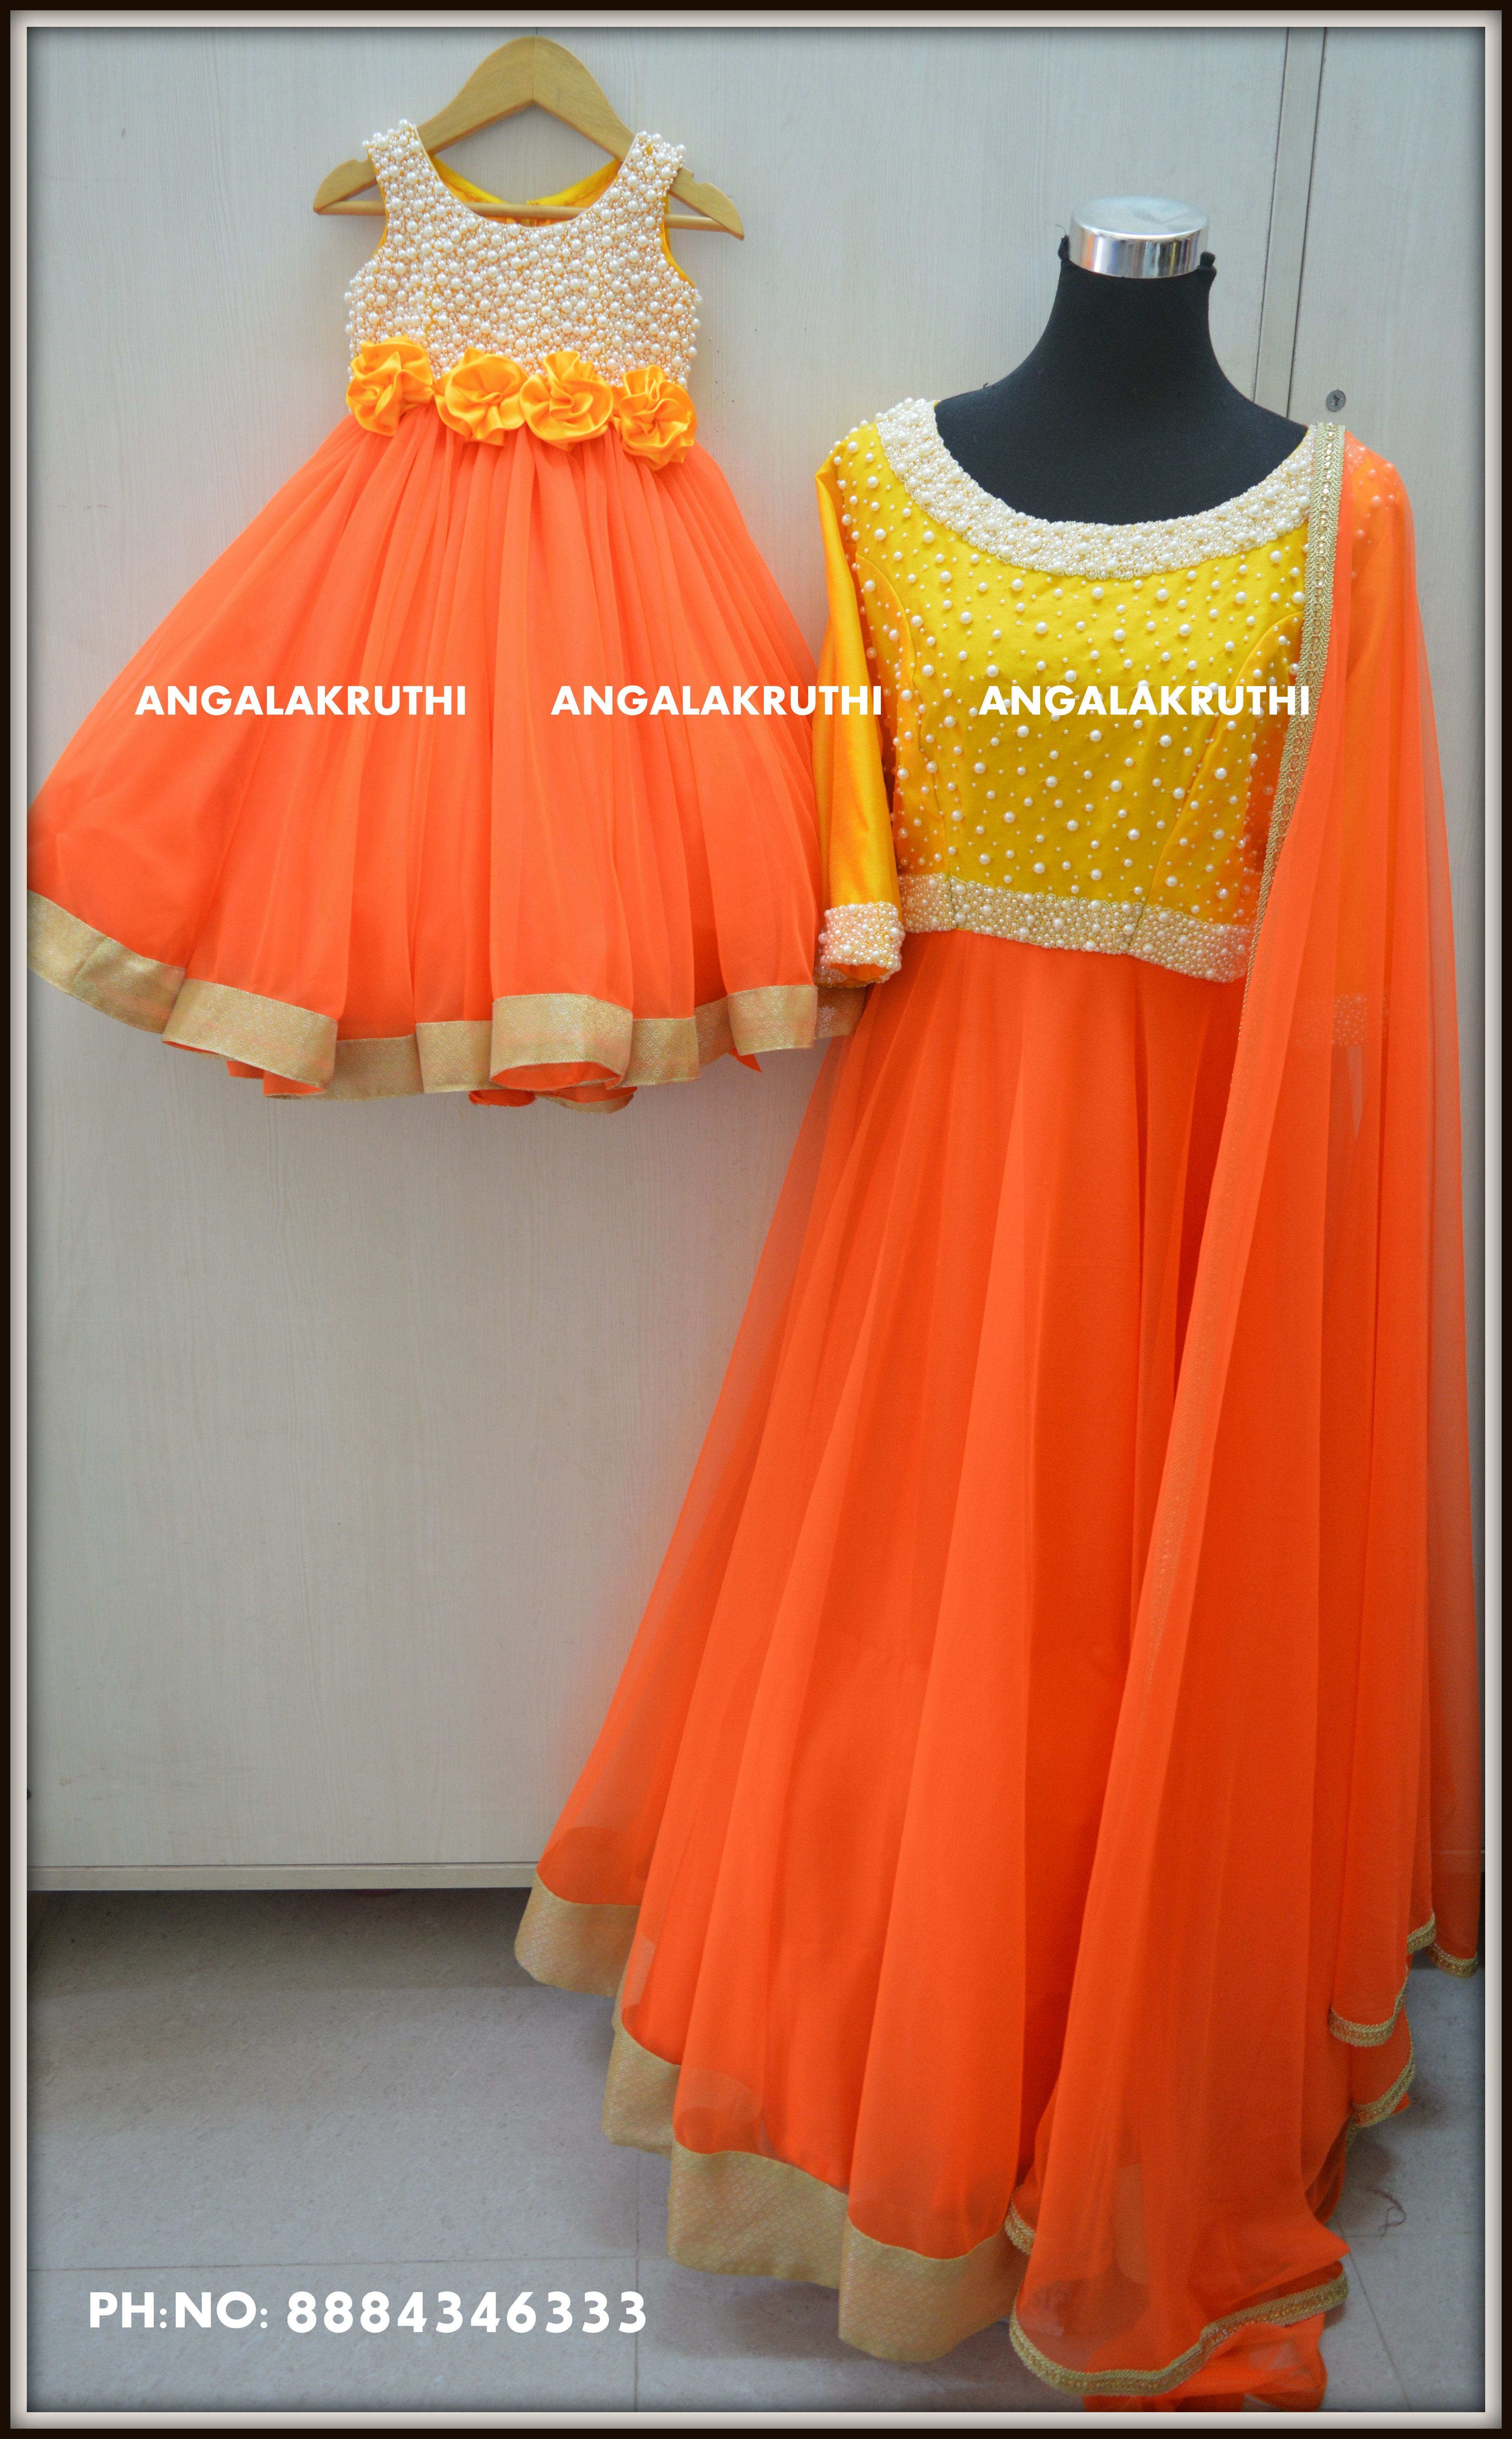 a17a0c3286 Mom and Daughter dress designs with pearl hand embroidery by Angalakruthi-Ladies  and kids custom designer boutique in Banswadi Bangalore #Mom and Me designs  ...